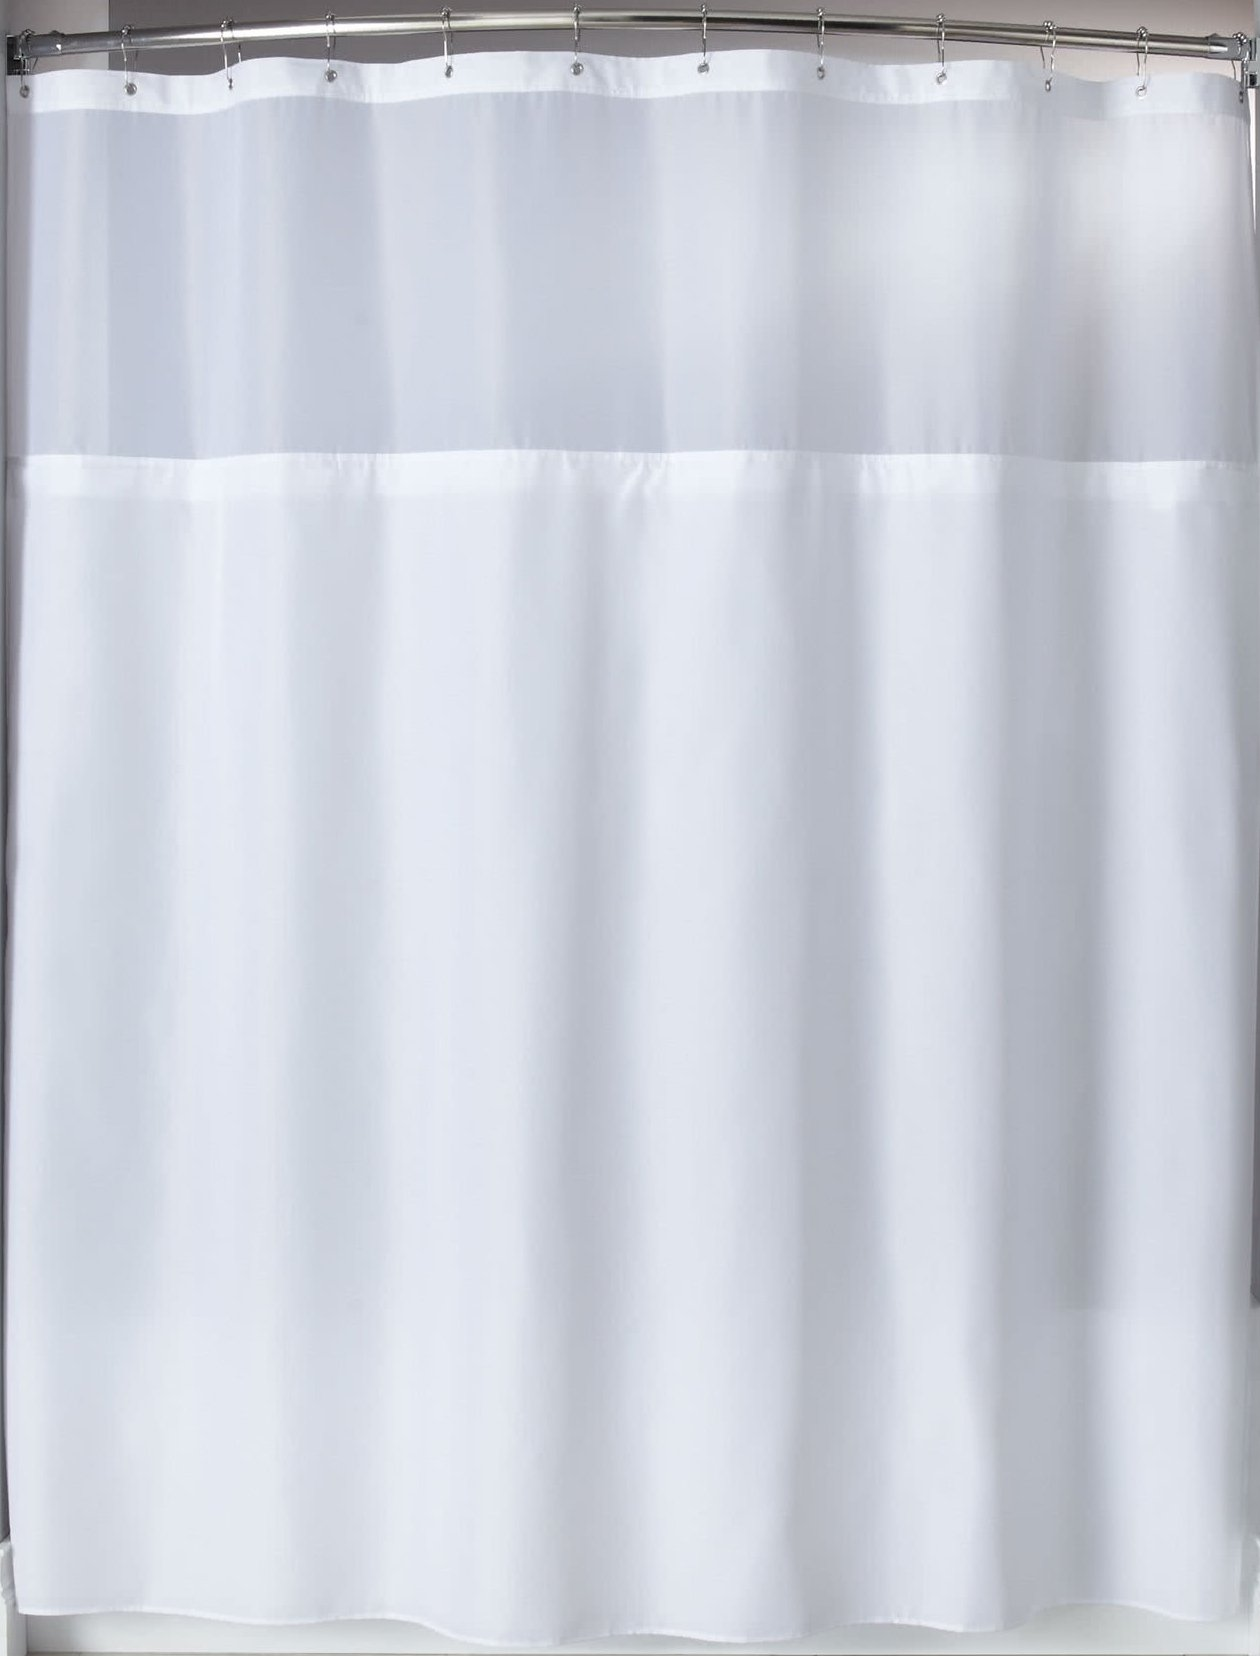 Trendy Linens Heavy Duty Hotel Quality Polyester Shower Curtain for Bathroom Shower Stall and Bathtub with Sheer Polyester Peek a boo Window - 71'' x 72'', White